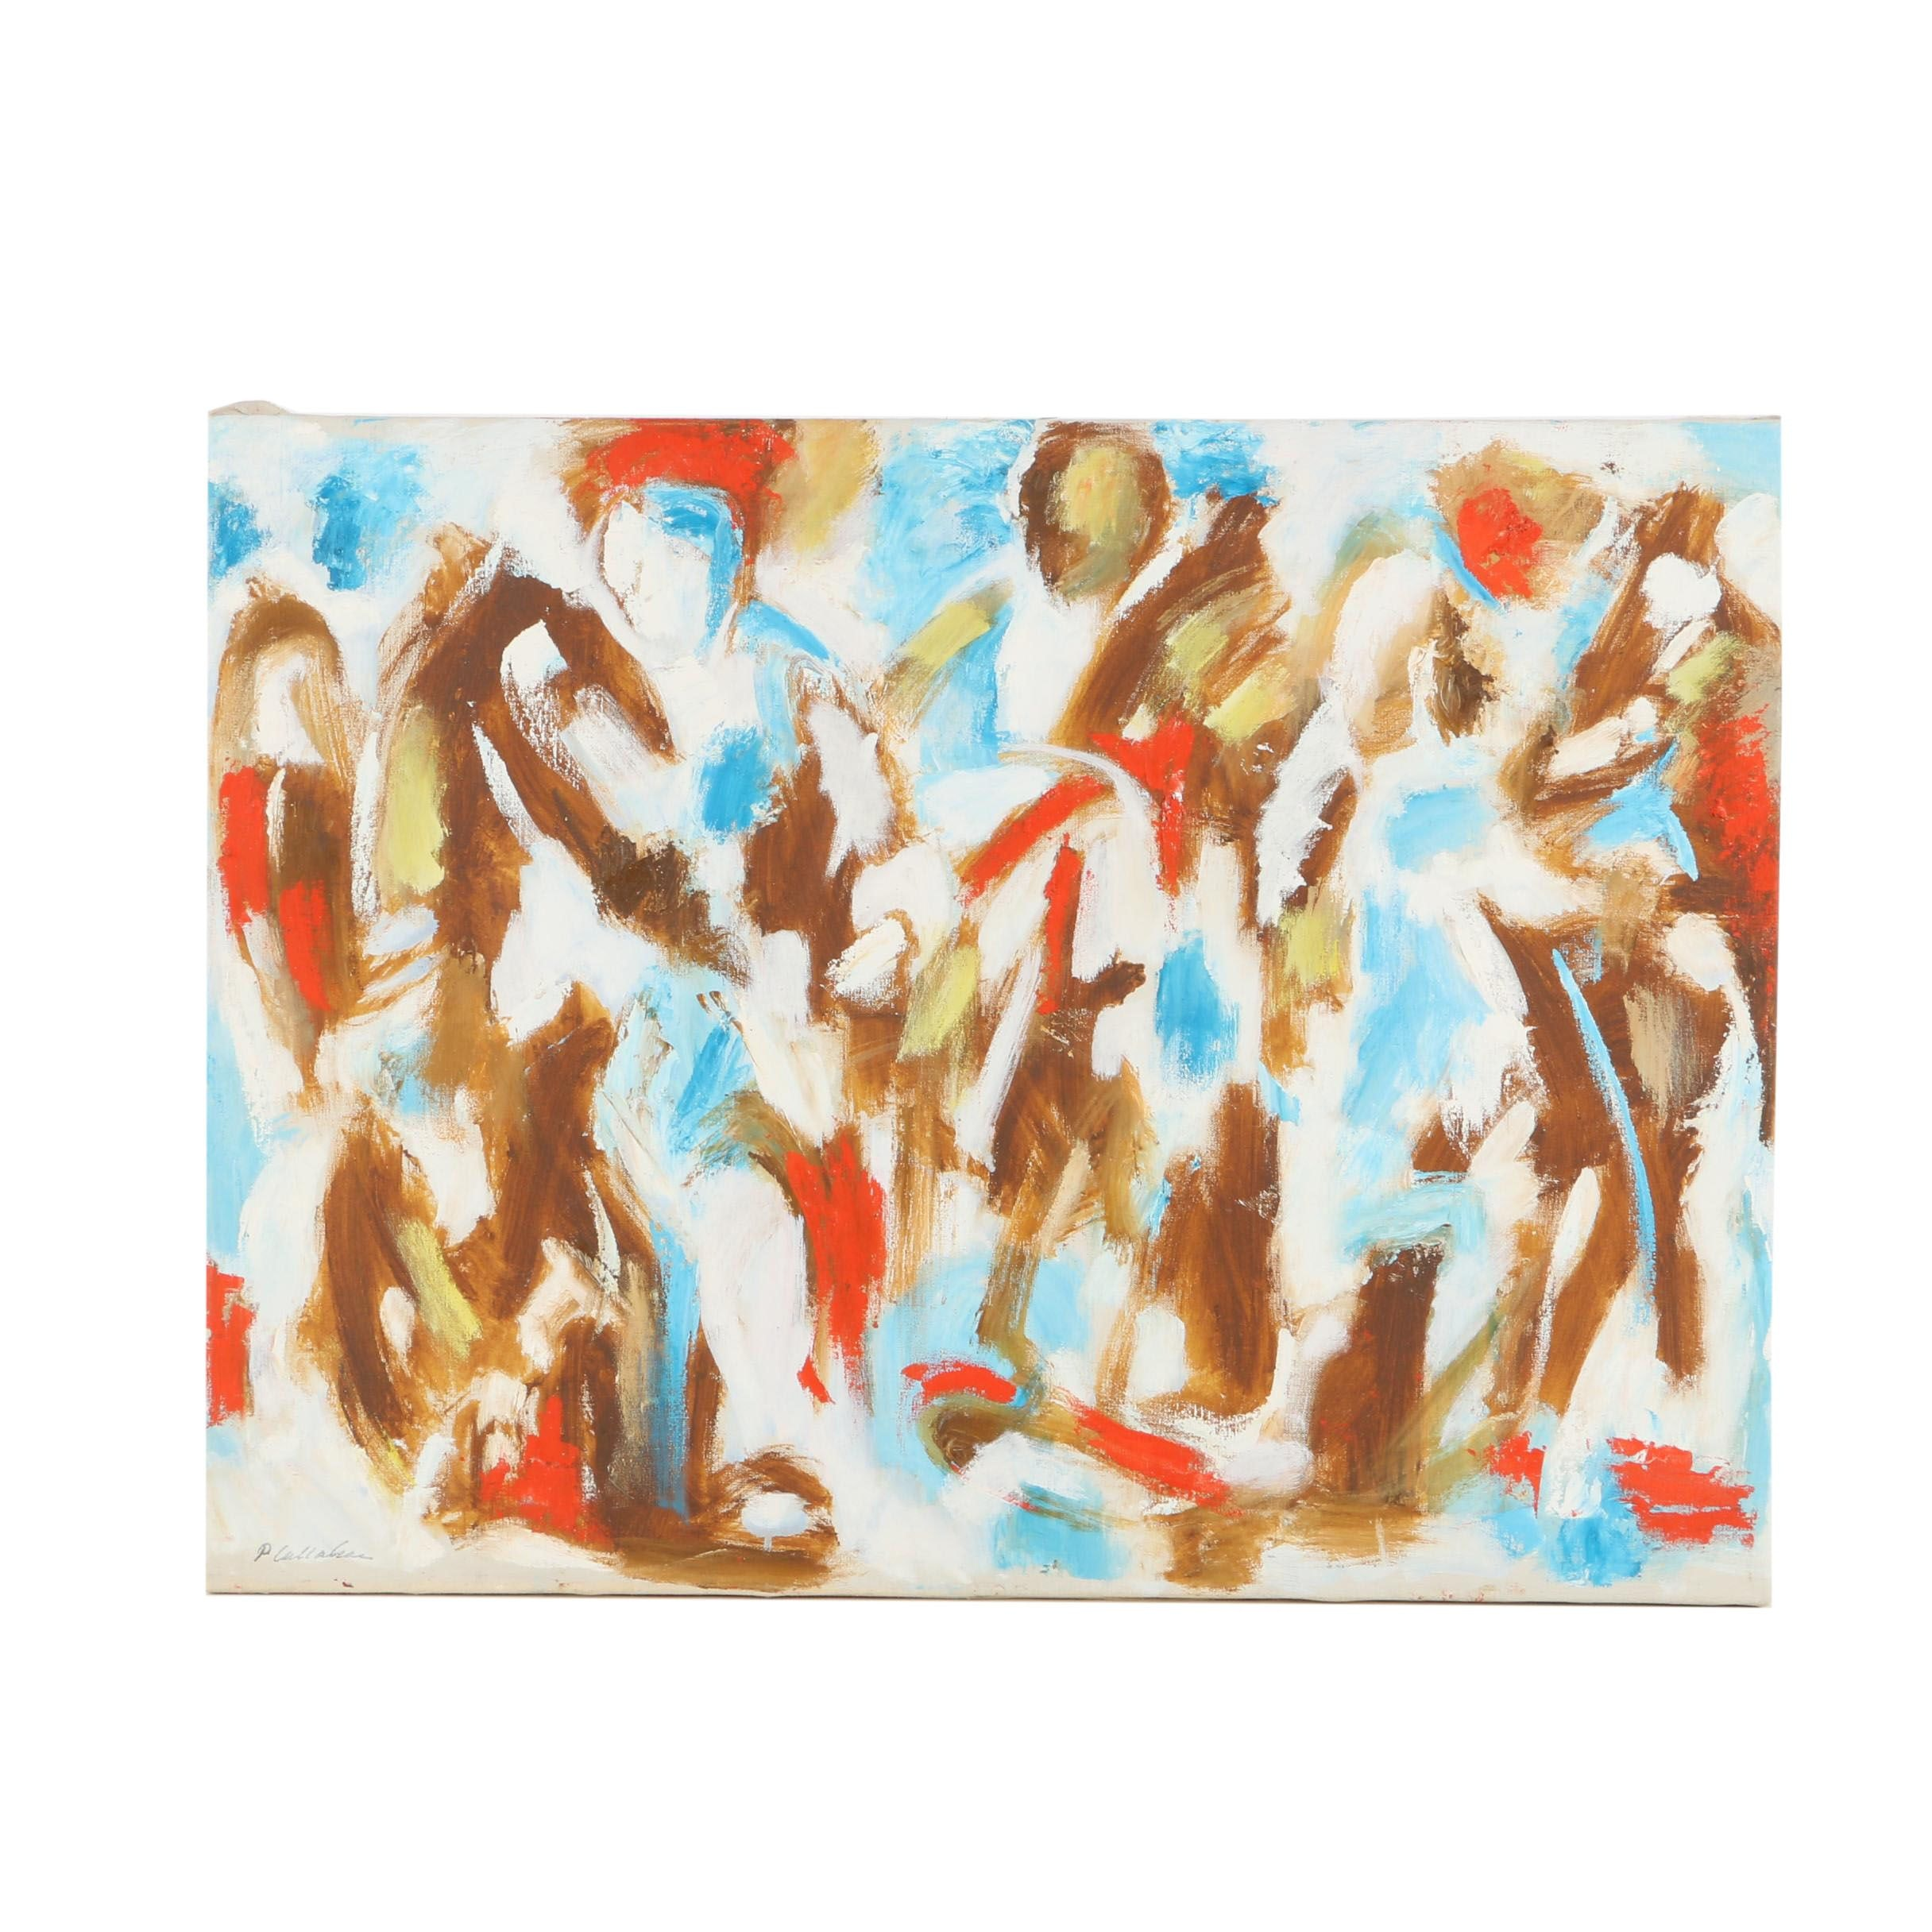 Phillip Callahan Oil Painting on Canvas of Abstract Figures